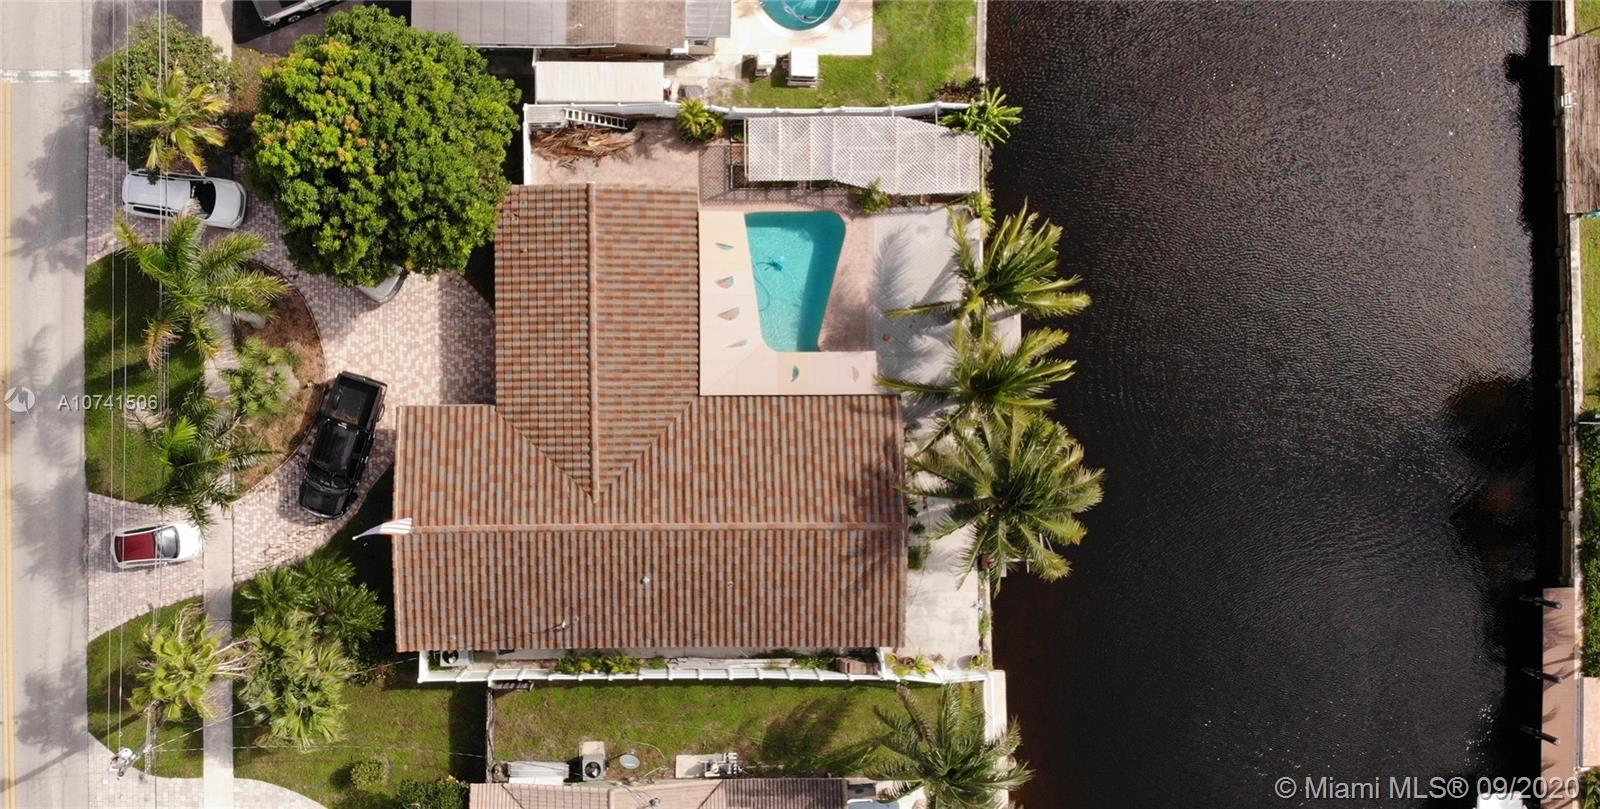 NEW AC 6/2020! Make this your home. Walk to Pine Crest school. Tile roof is approx 6 yrs old & stucco soffit, LED lighting around entire home. Wired for generator, impact doors & some windows, clear hurricane panels for others.  Enjoy ocean access waterfront w/private dock & boat lift. Relax in your salt water pool. Tankless water heater. Travertine flooring in living areas/kitchen. Kitchen has a great island w/soft close drawers, granite, ss appliances, lots of cabinet space. Master bath redone w/Turkish marble & glass enclosed shower. 2nd bath features jacuzzi tub & separate shower. Custom awnings, garden area for the green thumb. Enjoy coconuts & sweet mangos from your own trees. 1 car garage for your toys/car/storage. Mins from I95 & US1 for easy commute. https://youtu.be/kNDRT8K3QUI